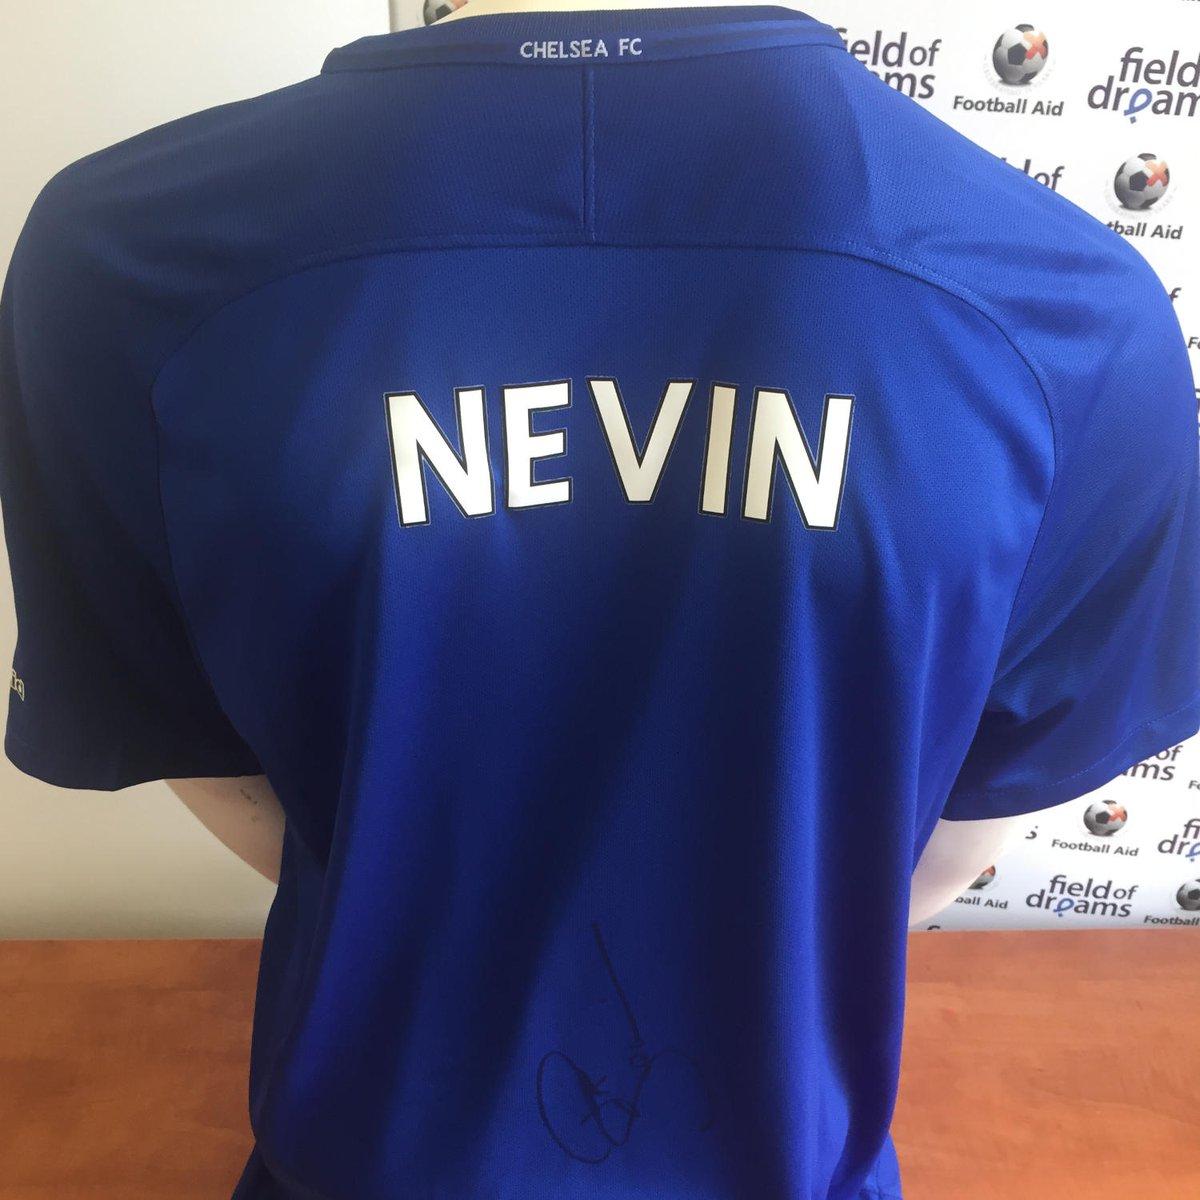 🔵 #CFC | #UCL 😍 Check out the fantastic @ChelseaFC #SignedShirts we have available in our charity auction! ⚽️ @PatNevin | @denniswise | Gianluca Vialli Bid Here 👉 footballaid.com/play/signed-sh… #KRACHE #FootballShirts #MatchWorn #FootballMemorabilia #Charity